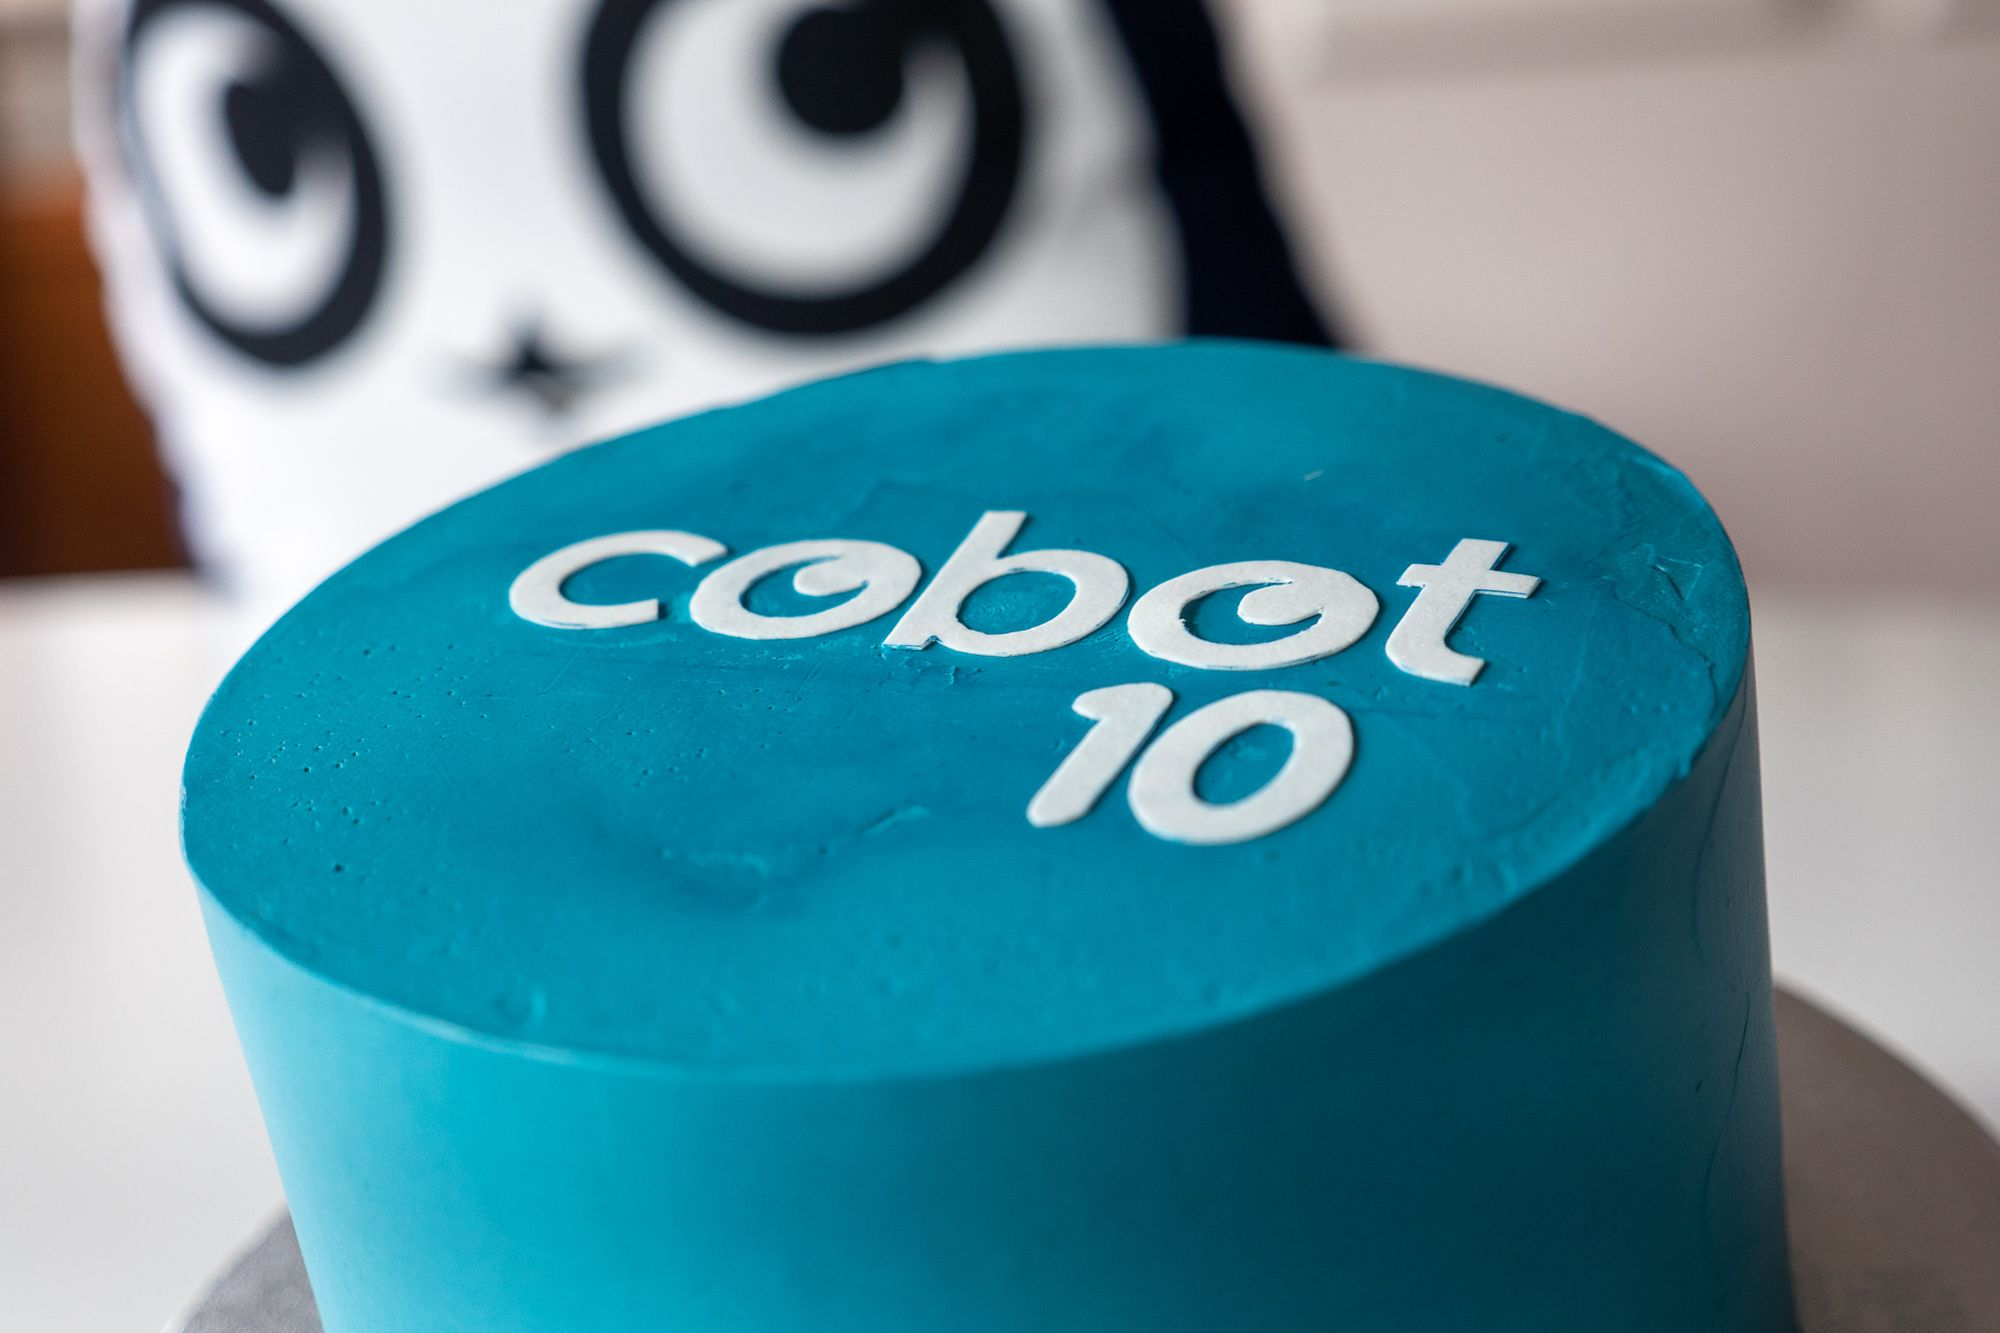 10 Years of Cobot